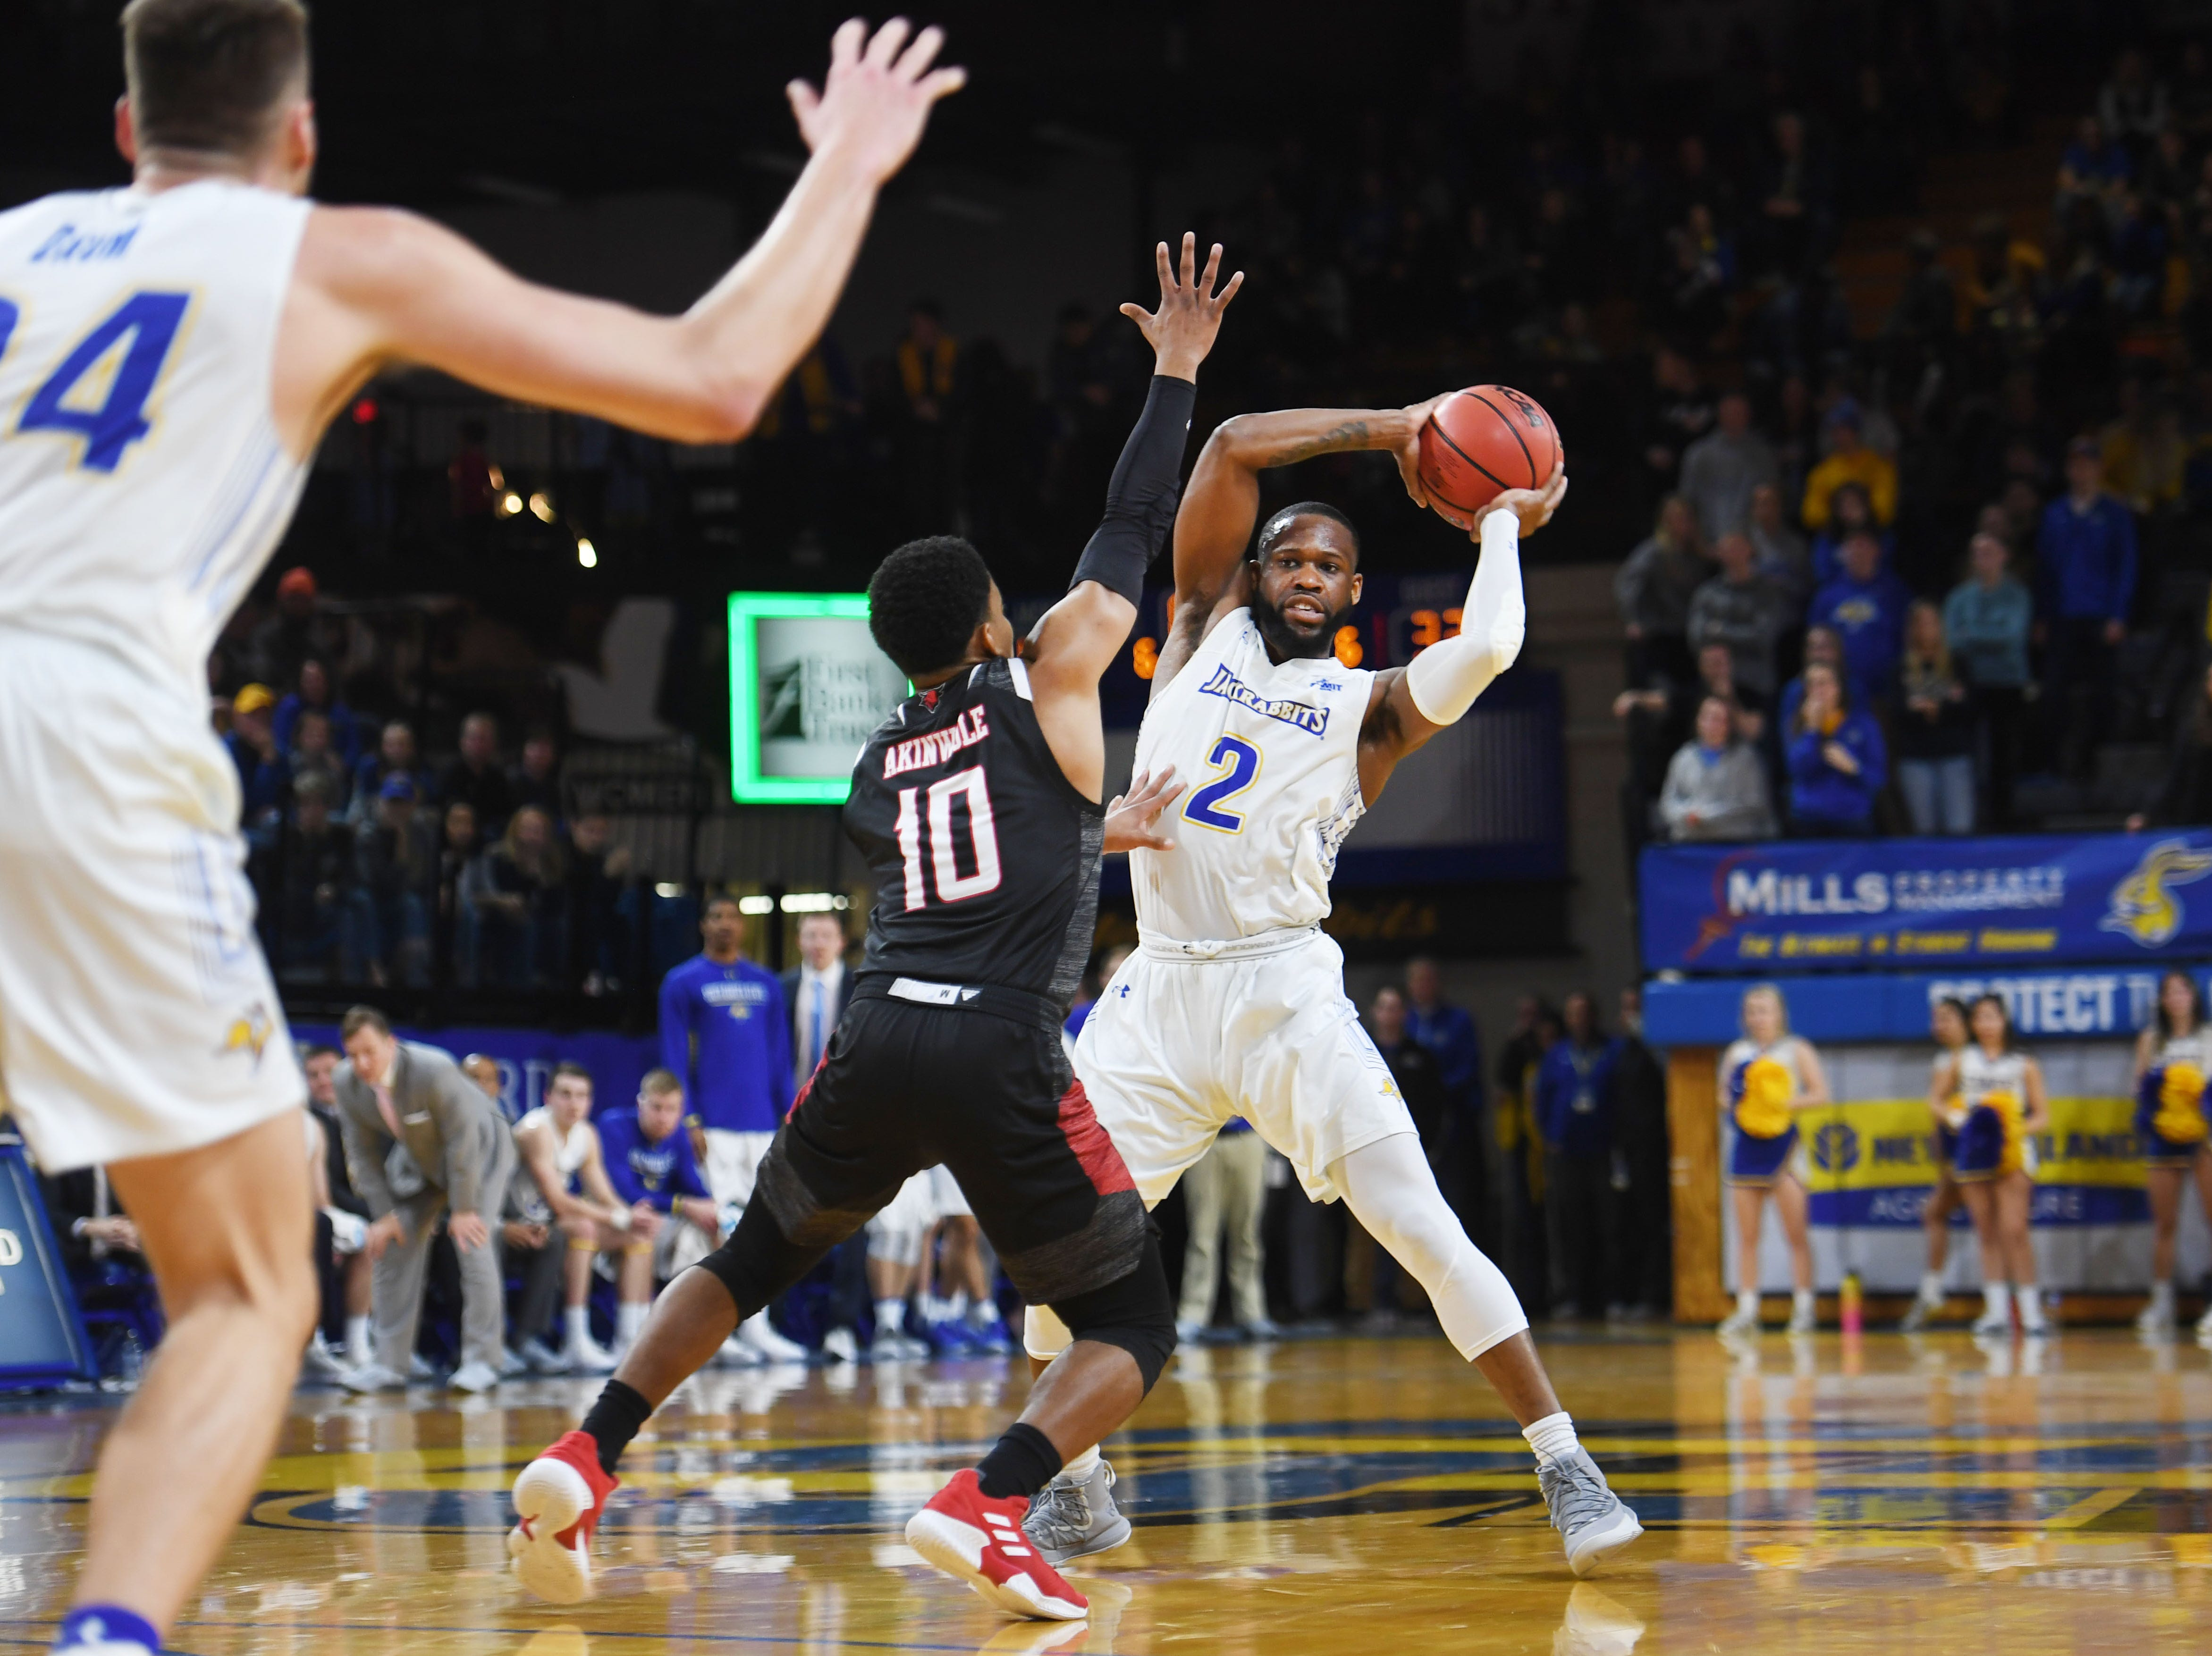 SDSU's Tevin King (2) looks to pass the ball to Mike Daum, far left, during the game against Omaha Saturday, Jan. 26, at Frost Arena in Brookings.